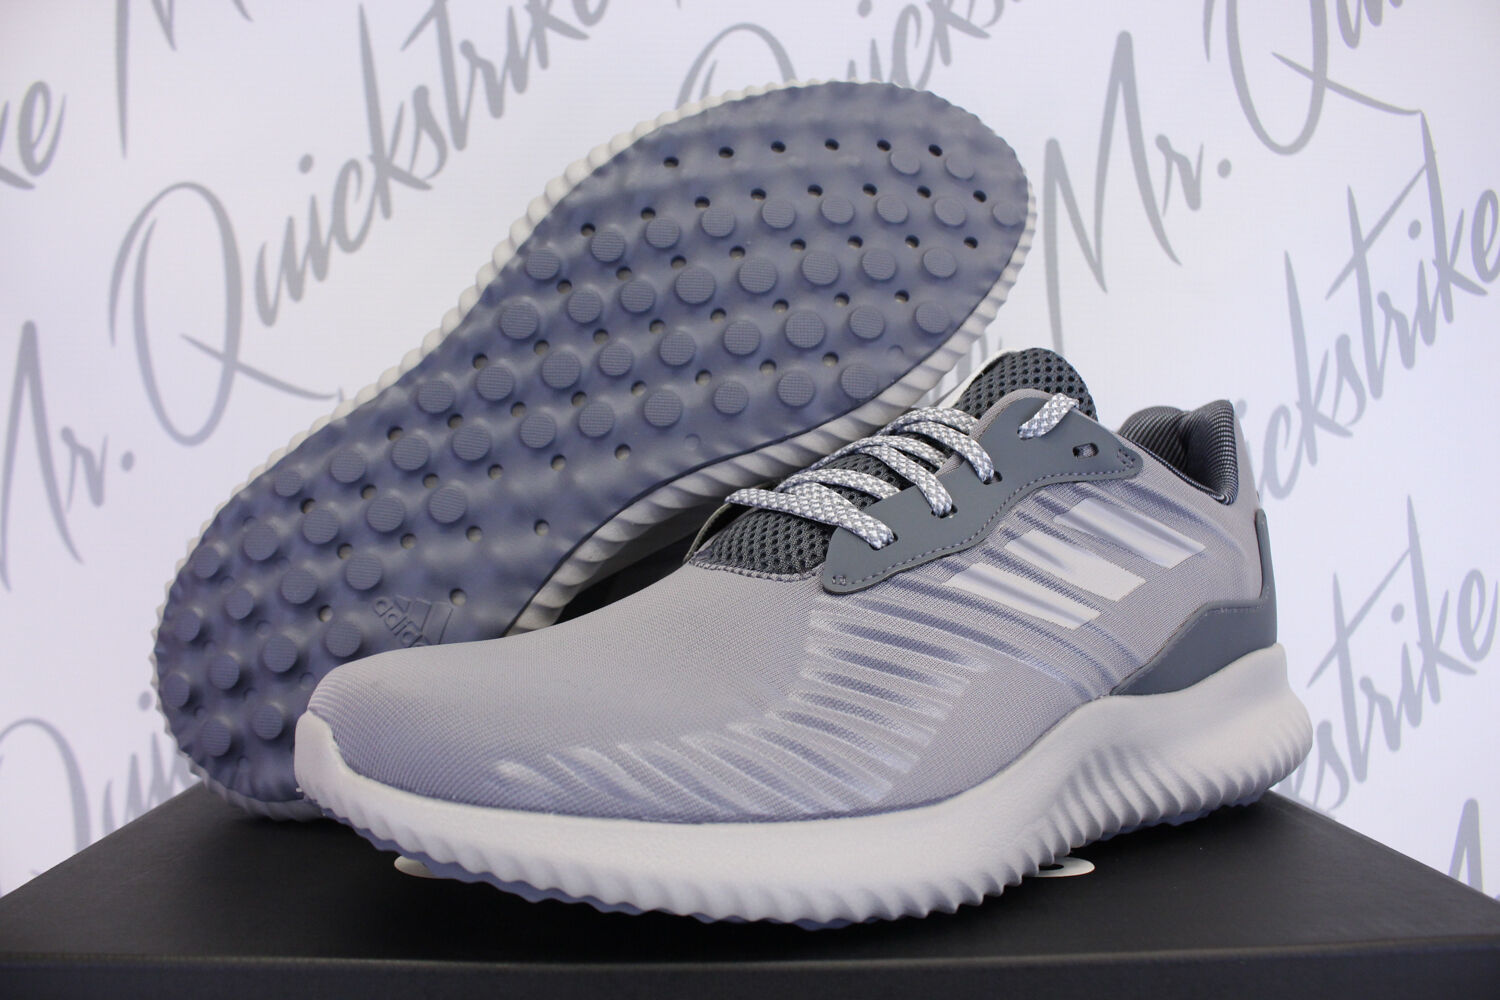 ADIDAS ALPHABOUNCE RC SZ 12 RUNNING SHOE HEATHER GREY BLACK WHITE BW0693